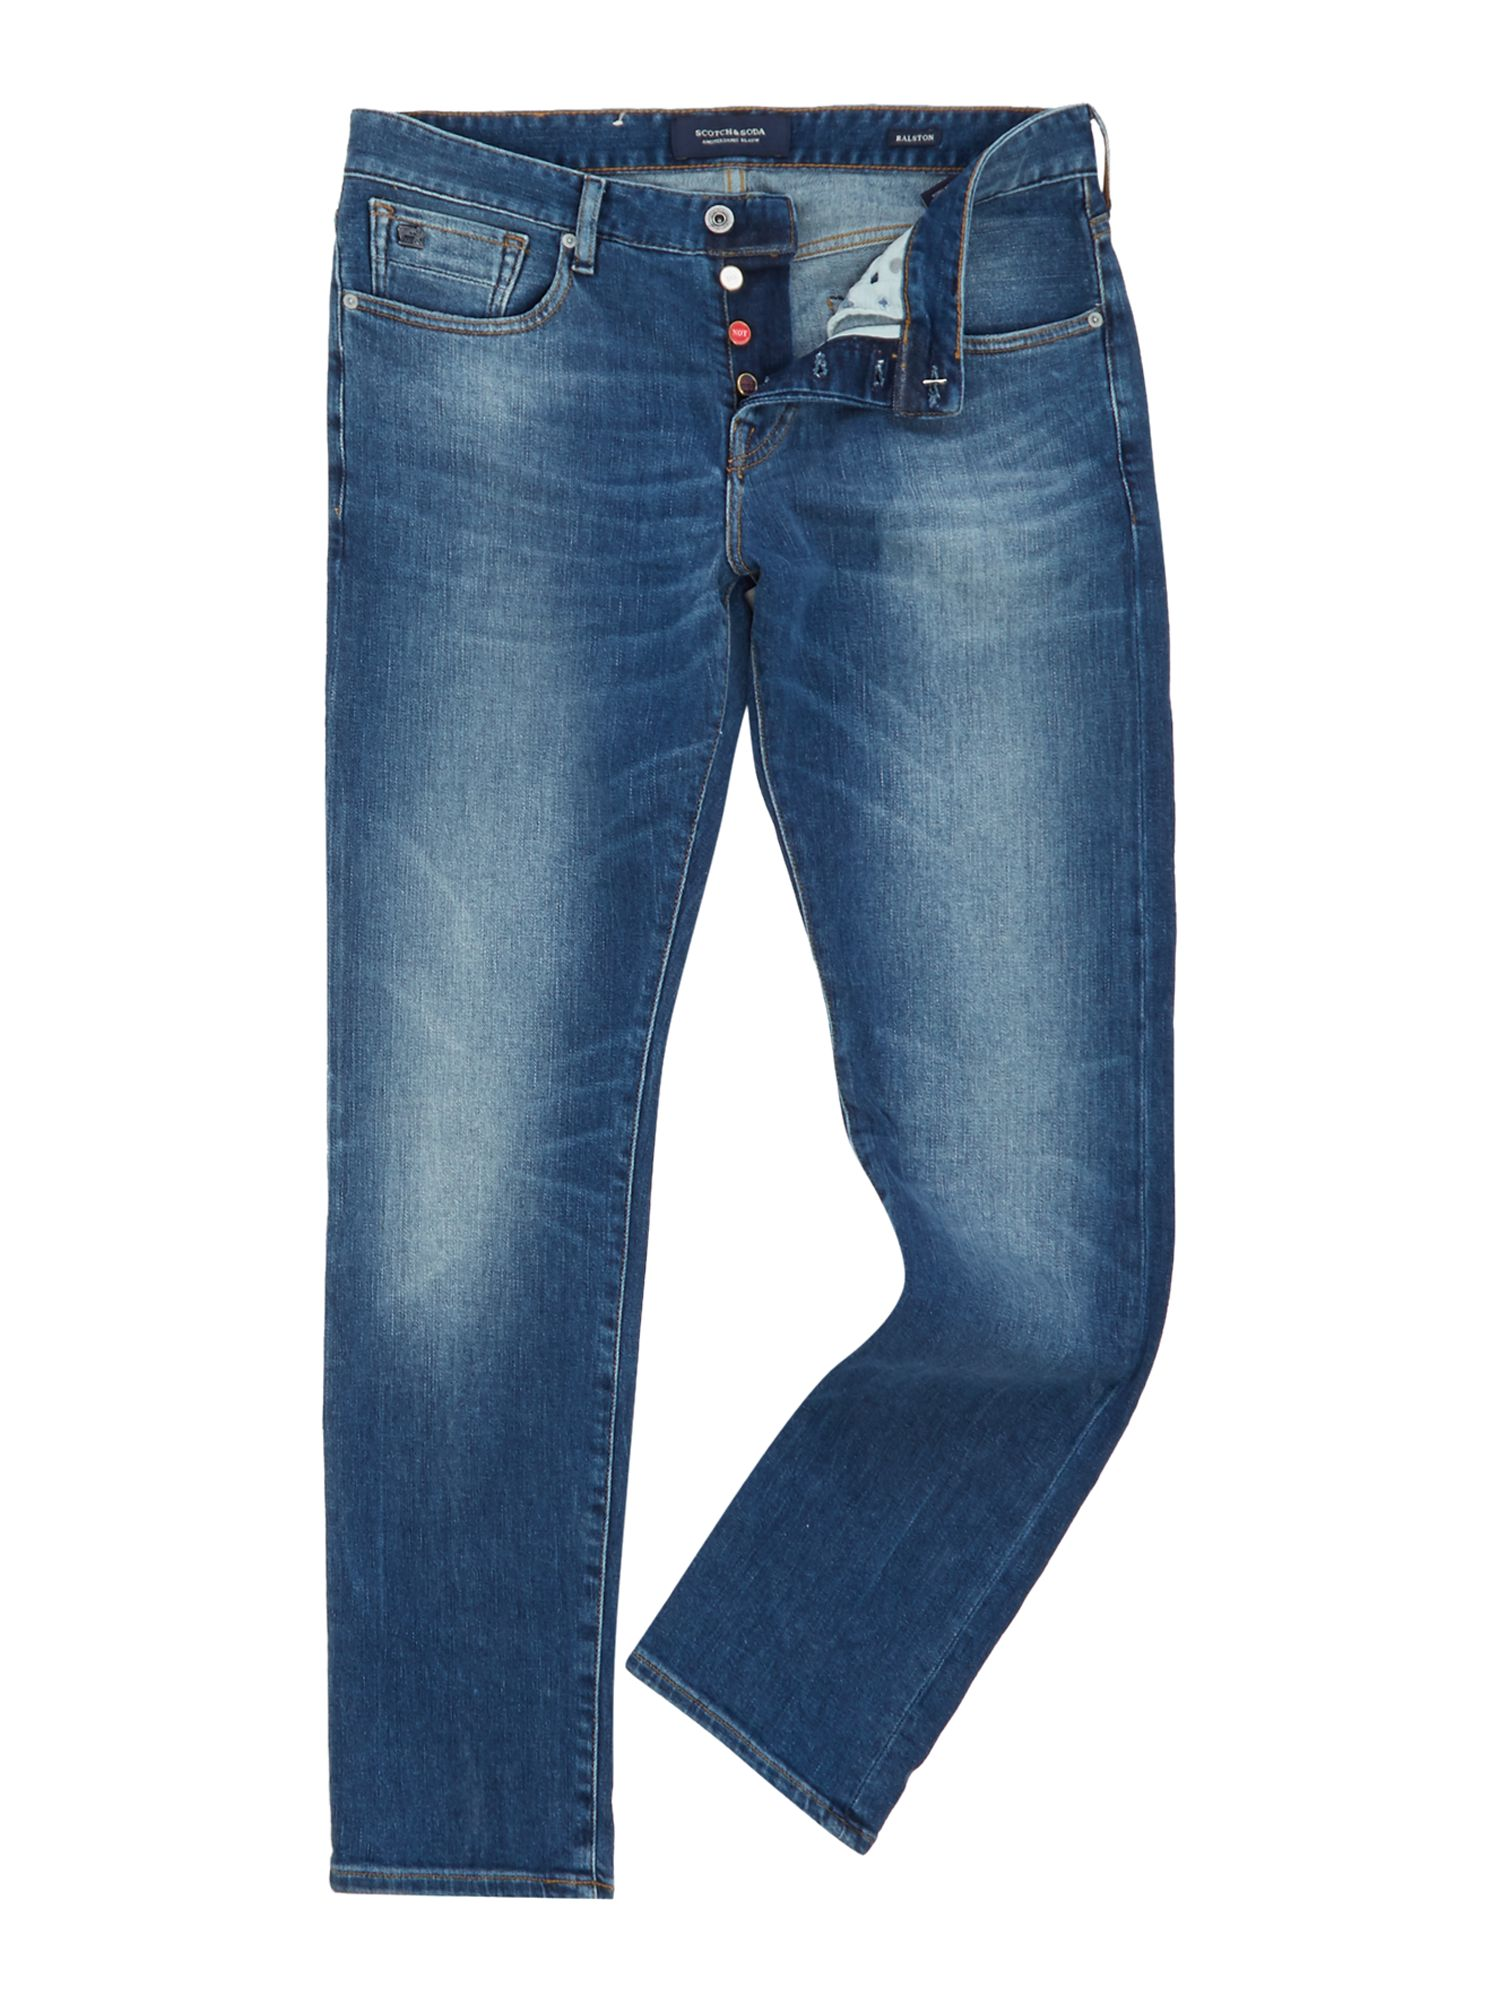 Mens Ralston Jeans  Laundry Service, Blue Wash